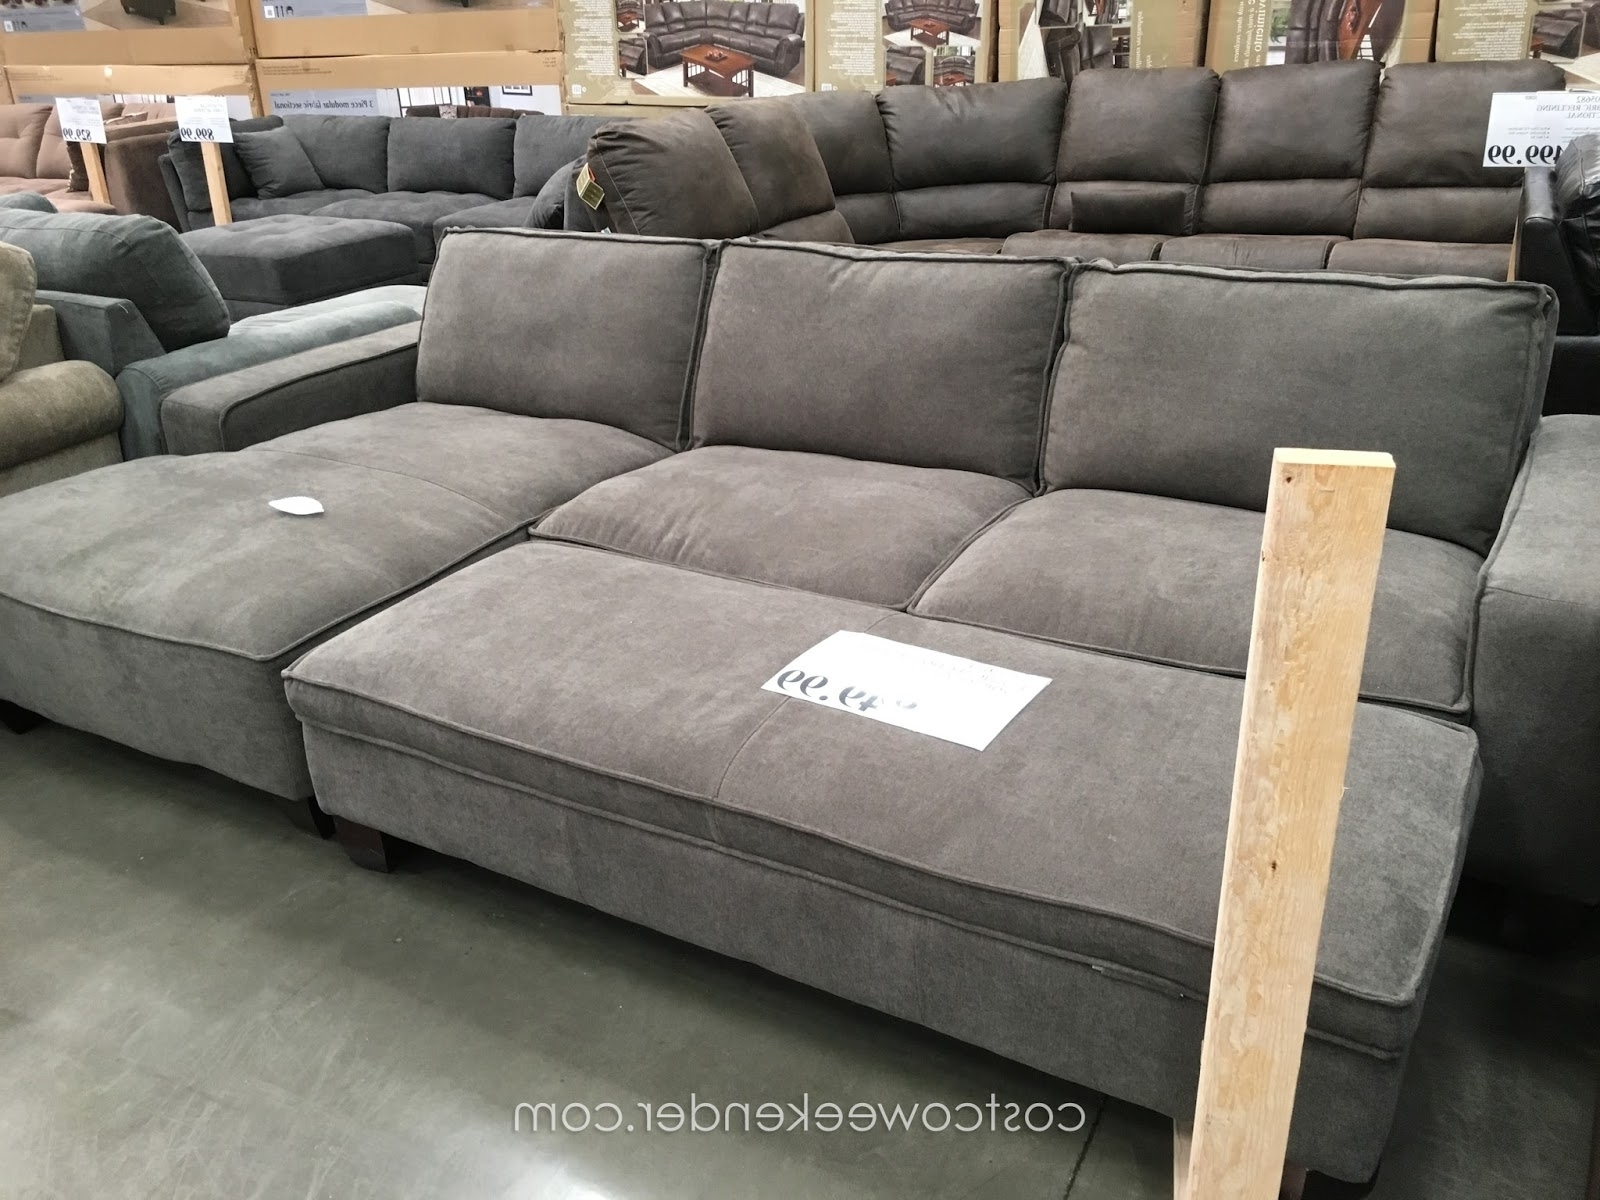 Favorite Sofa Chaise Sectionals In Leather Furniture Chair Sectional With Chaise Sofa White Sofas (View 15 of 15)